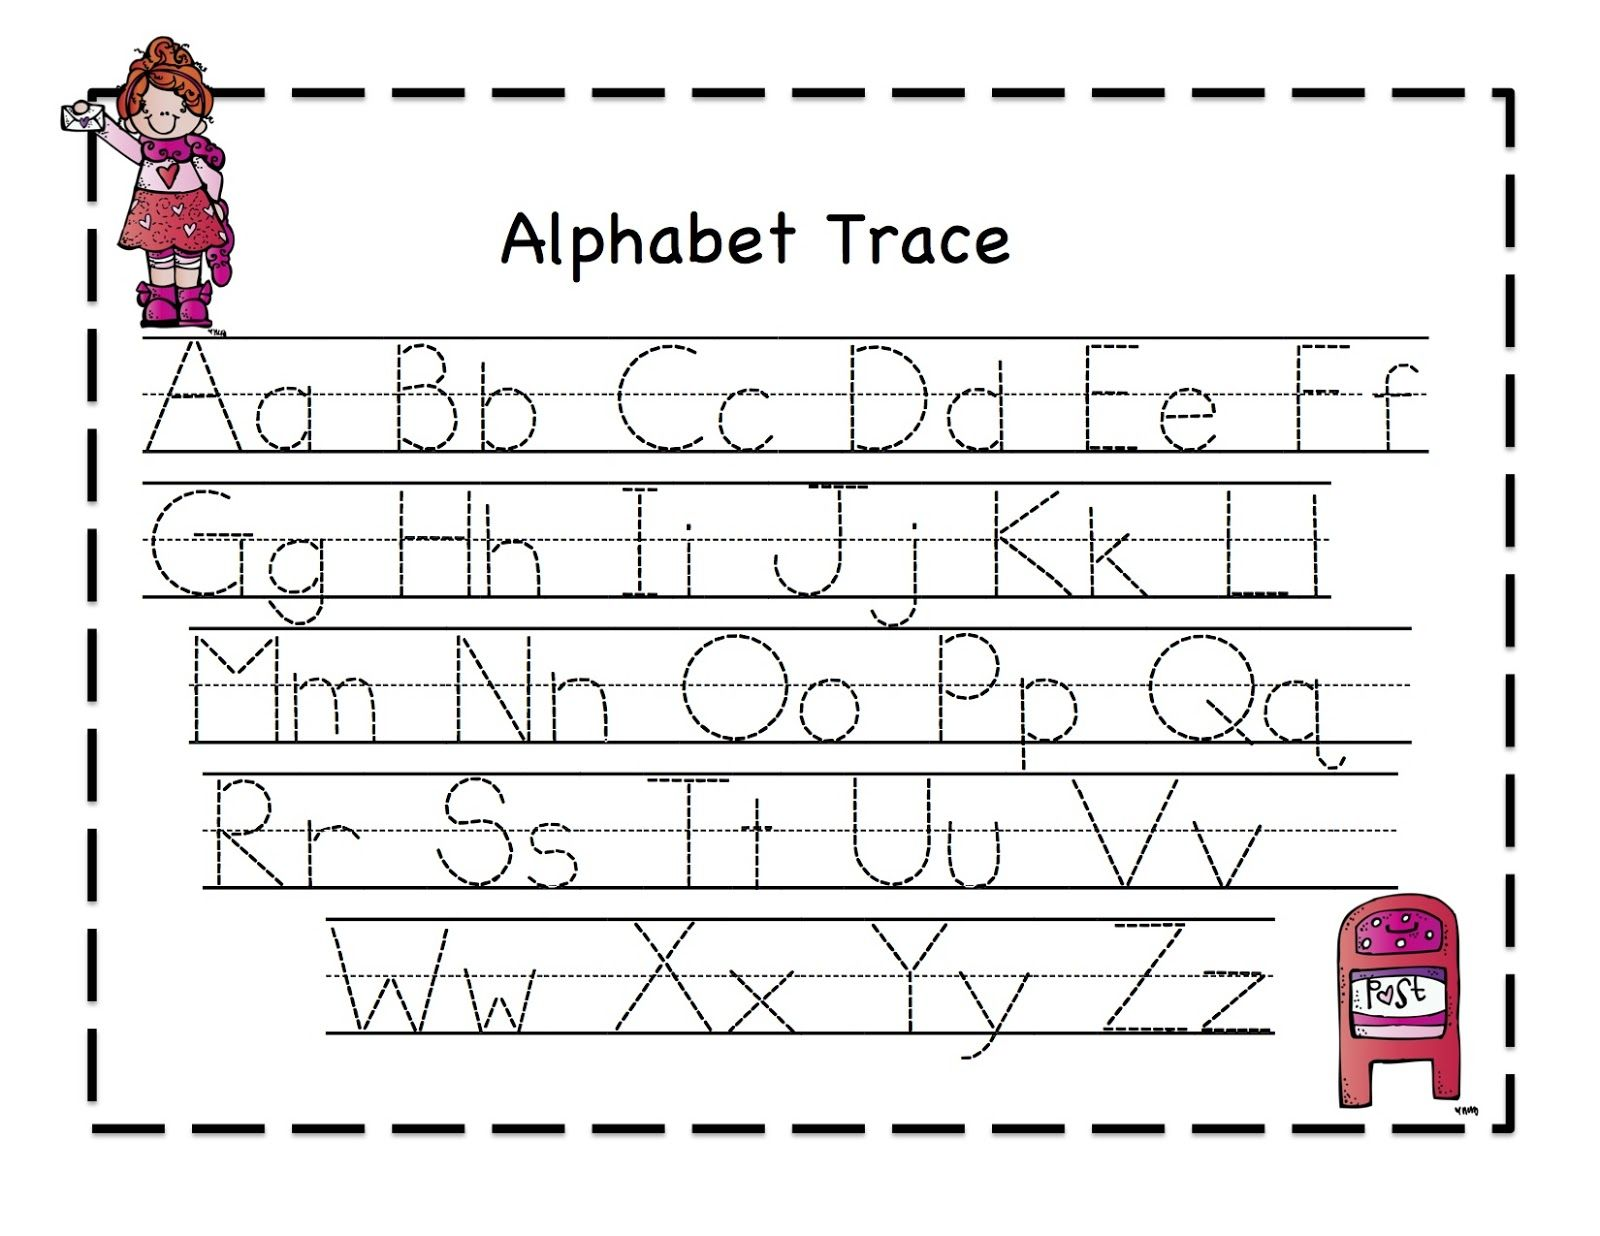 Printables Tracing The Alphabet Worksheets For Kindergarten kindergarten worksheets alphabet syndeomedia